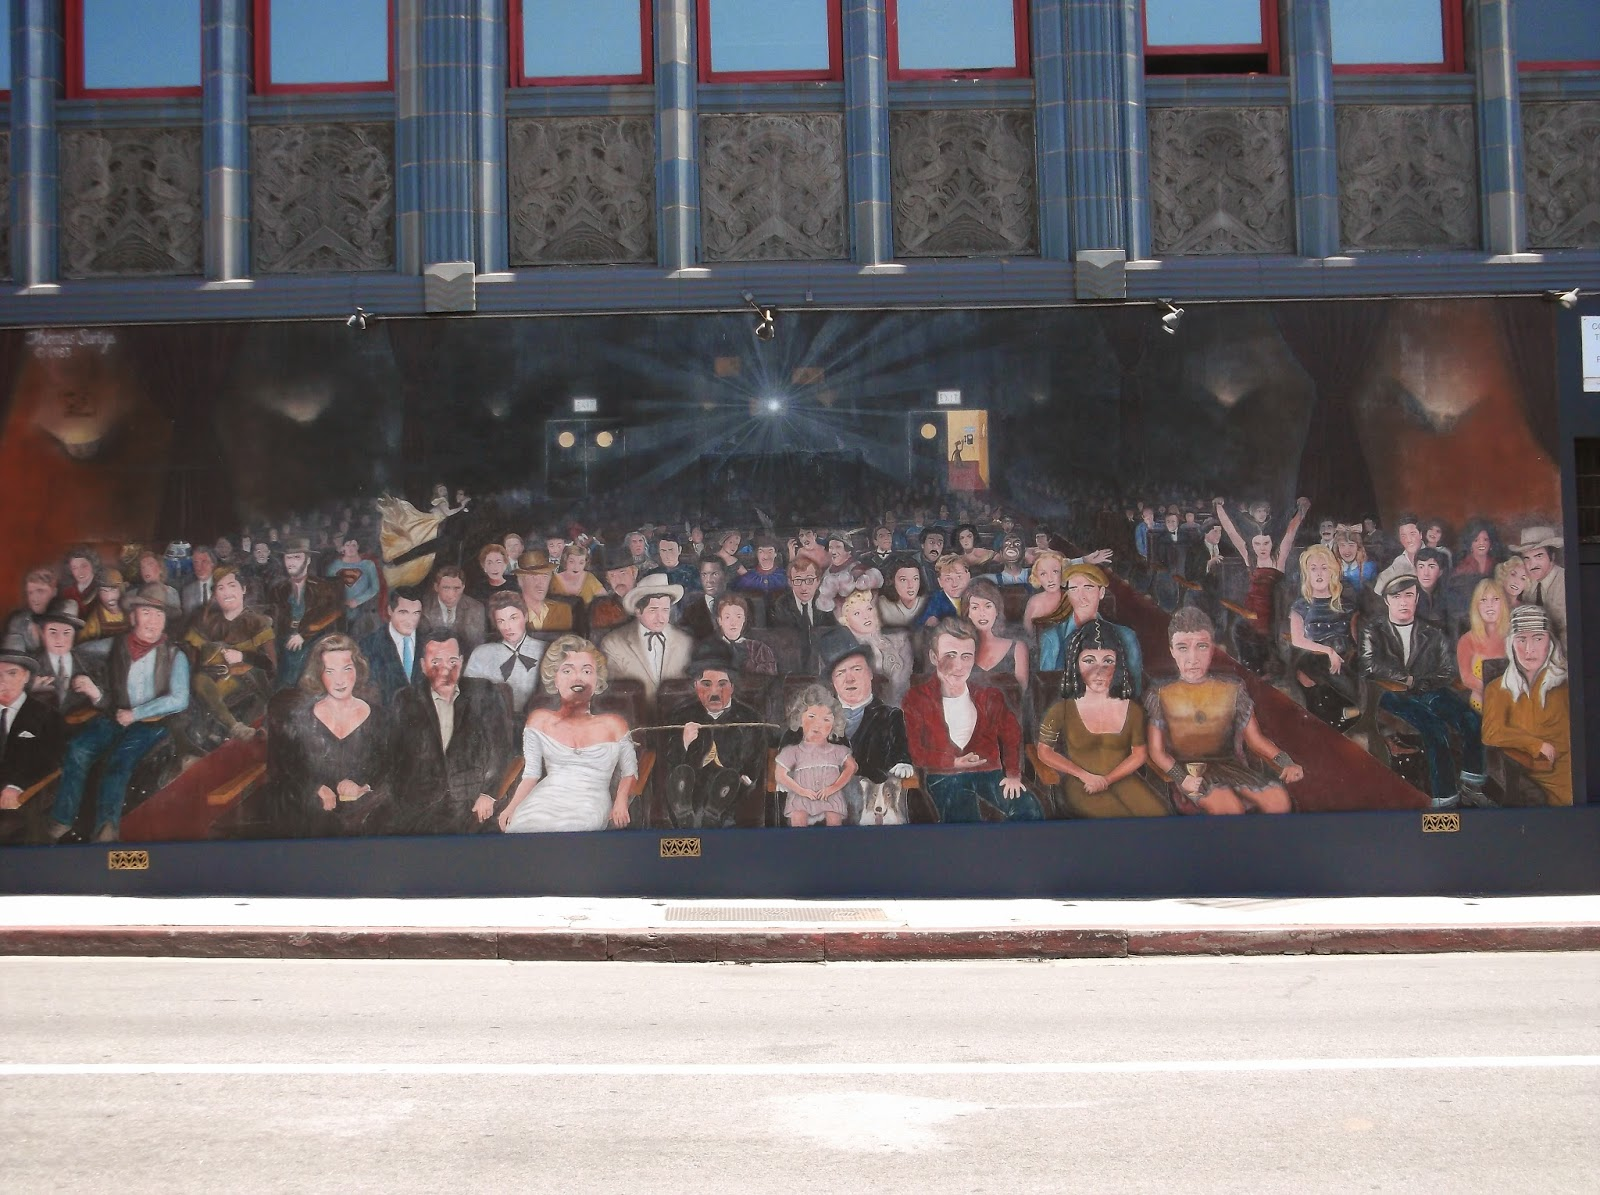 filming locations of chicago and los angeles modern girls 0 49 walking by a mural that is the